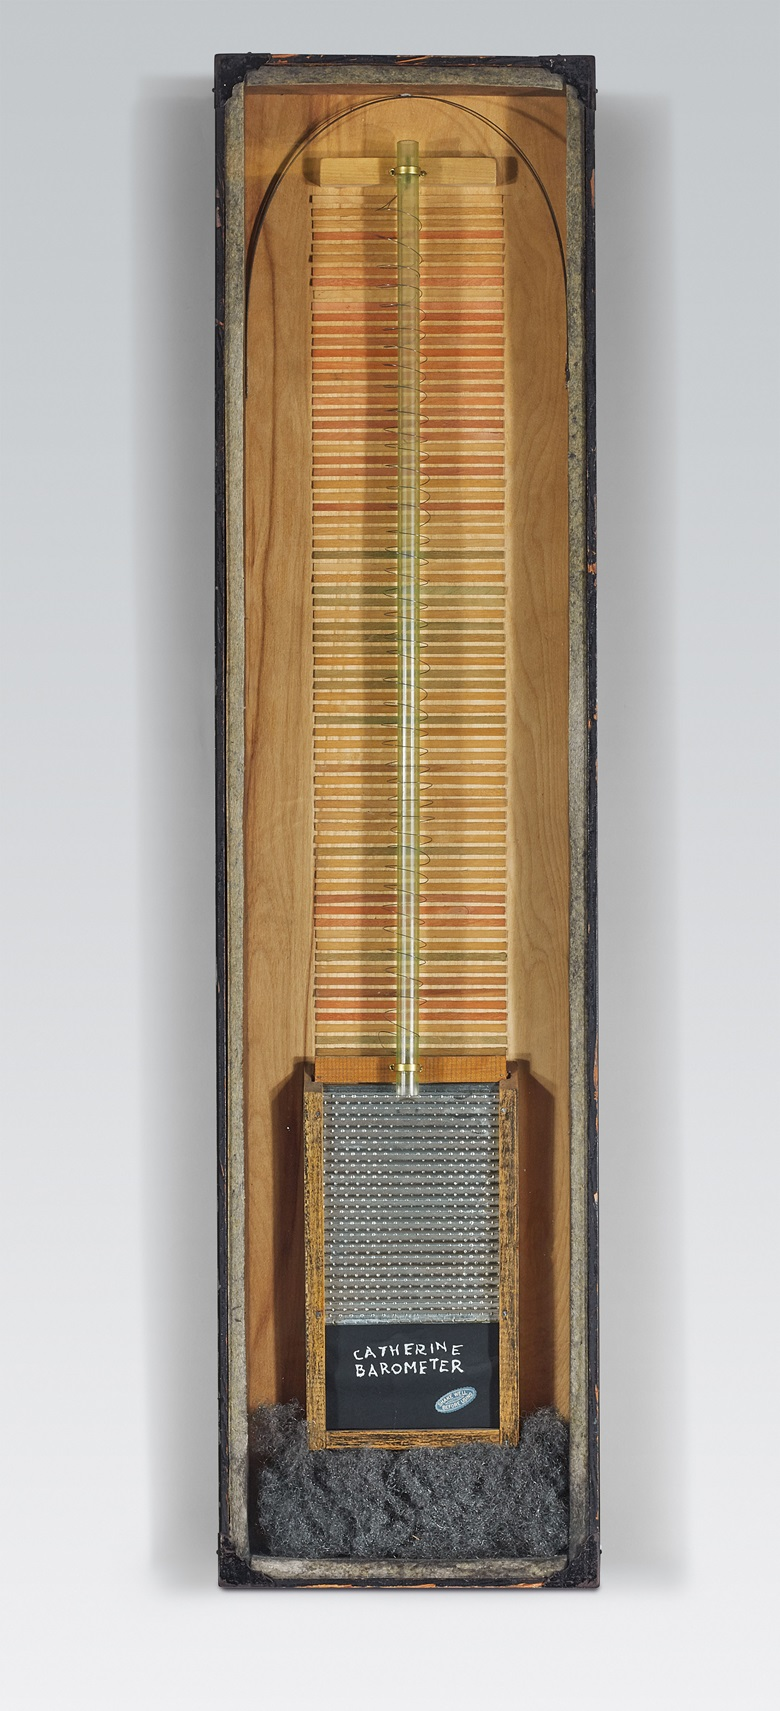 Man Ray (1890-1976), Catherine Barometer, executed in 1920; unique. Depth 2⅛ in (5.9 cm). Estimate $2,000,000-4,000,000. This lot is offered in the Impressionist & Modern Art Evening Sale on 13 November 2017  at Christie's in New York